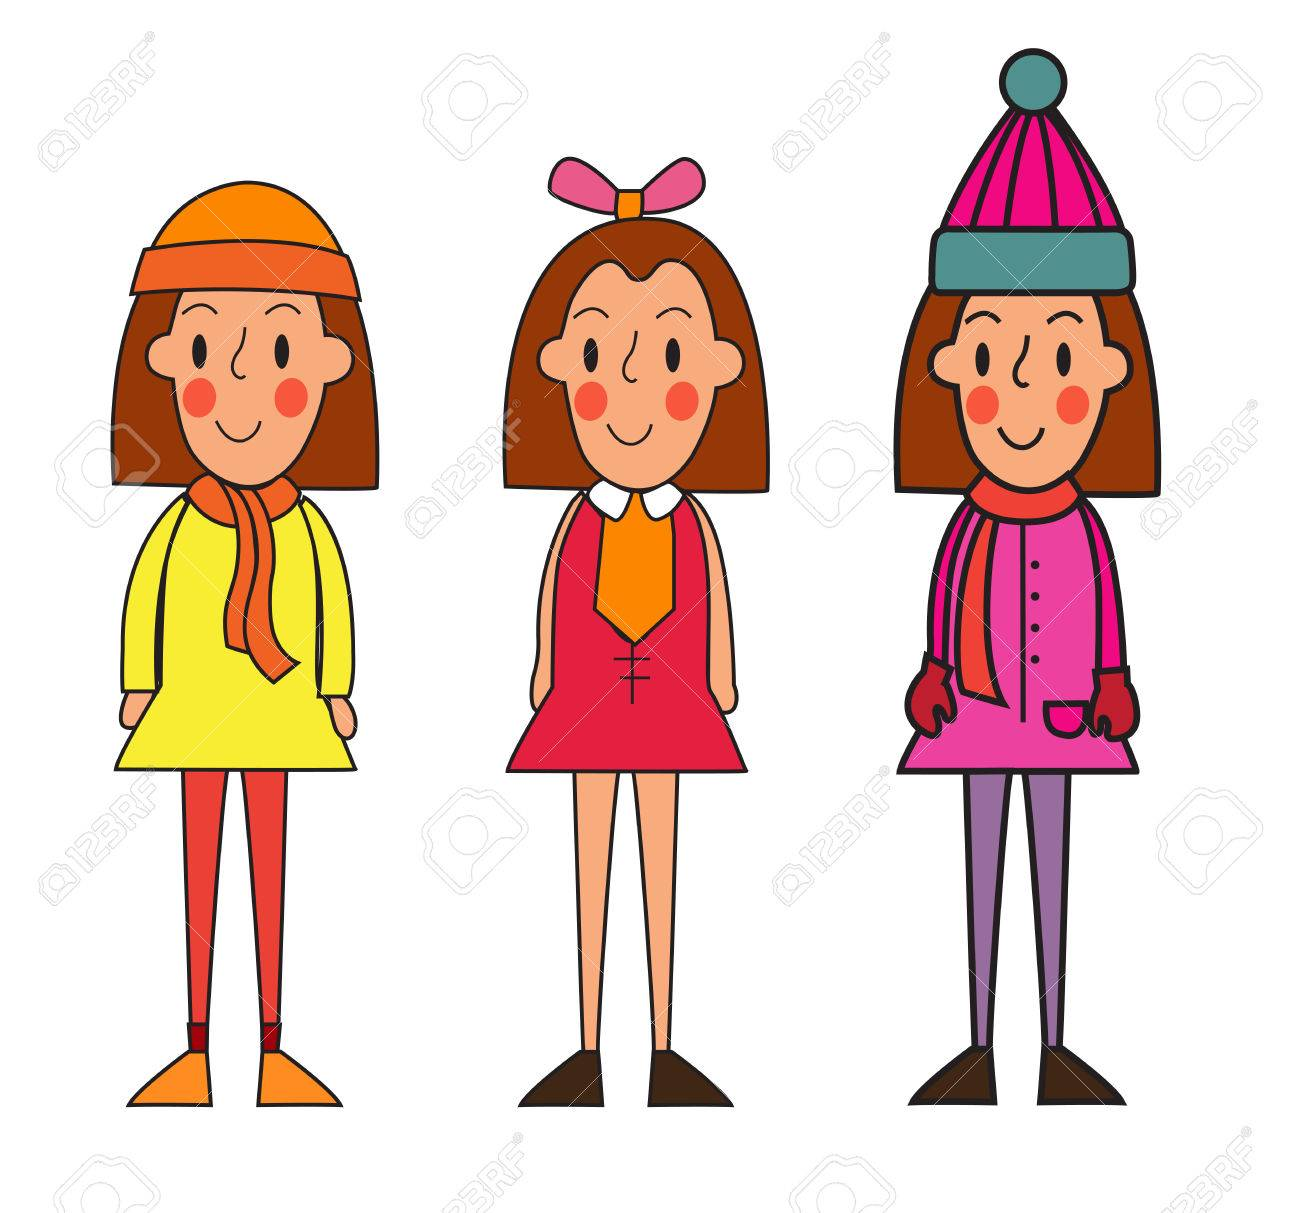 e53f1651df9 Cute cartoon girl in of clothes for different seasons   spring